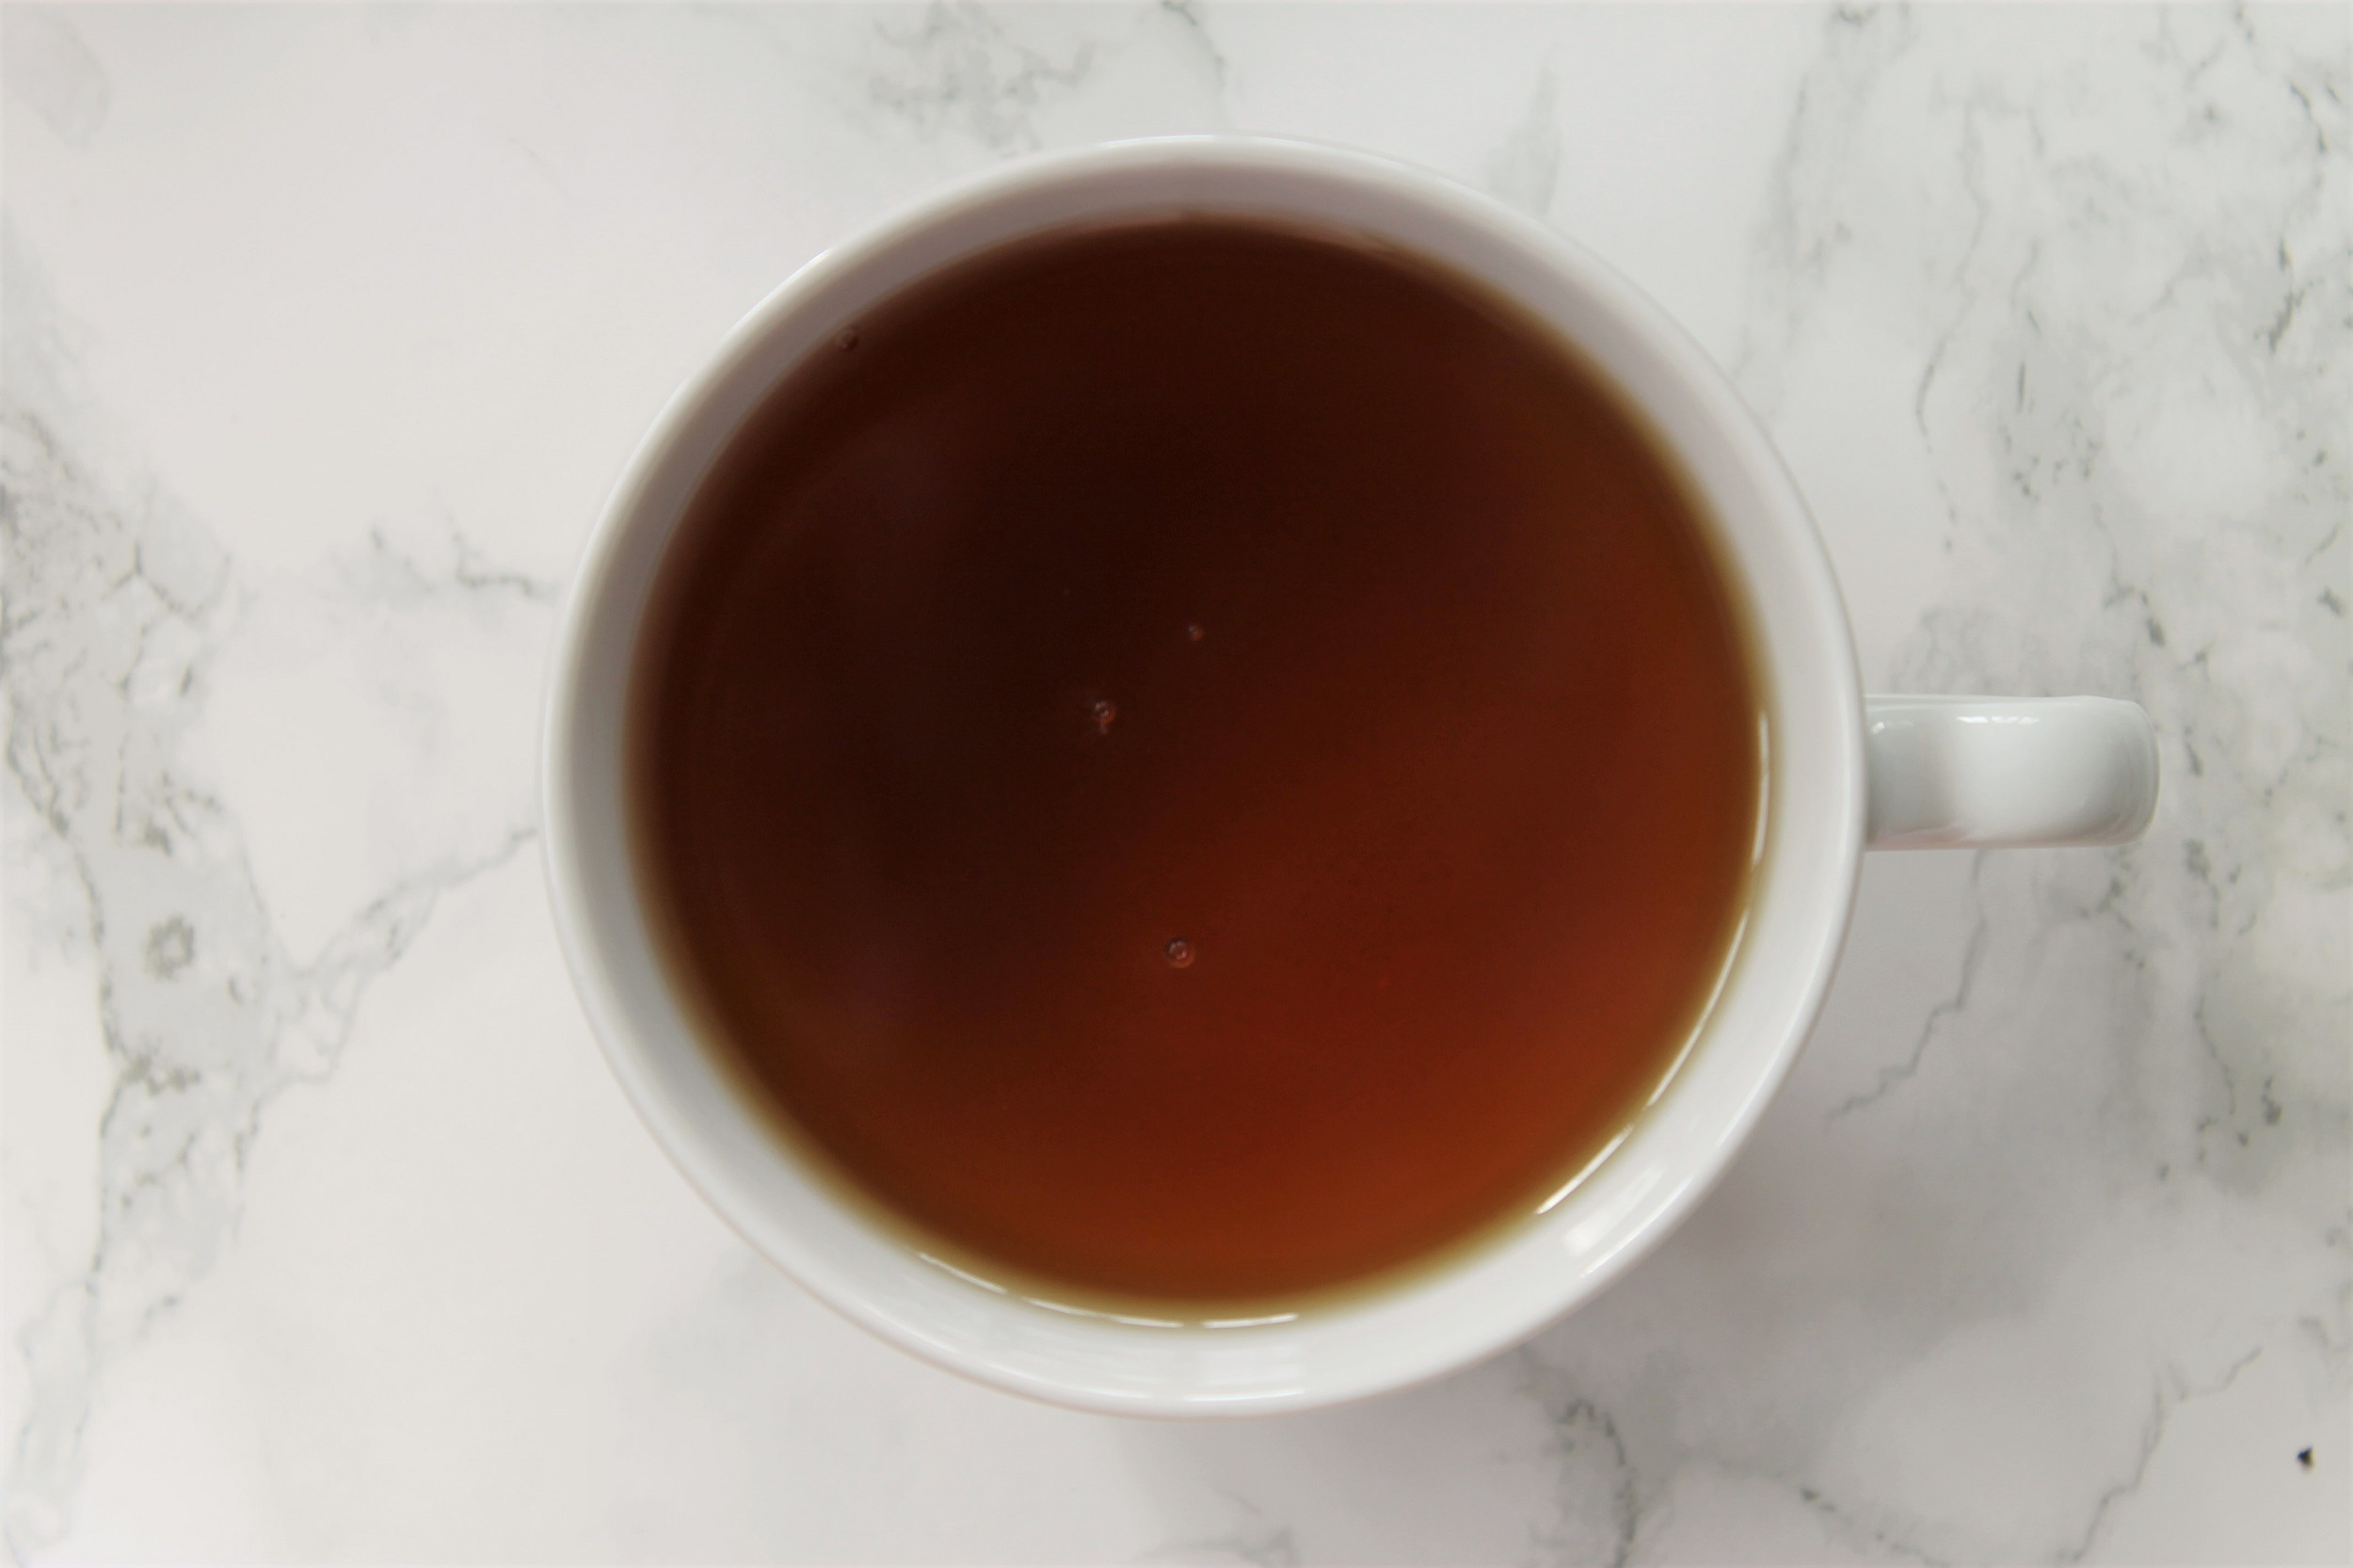 ceylon black tea in white teacup